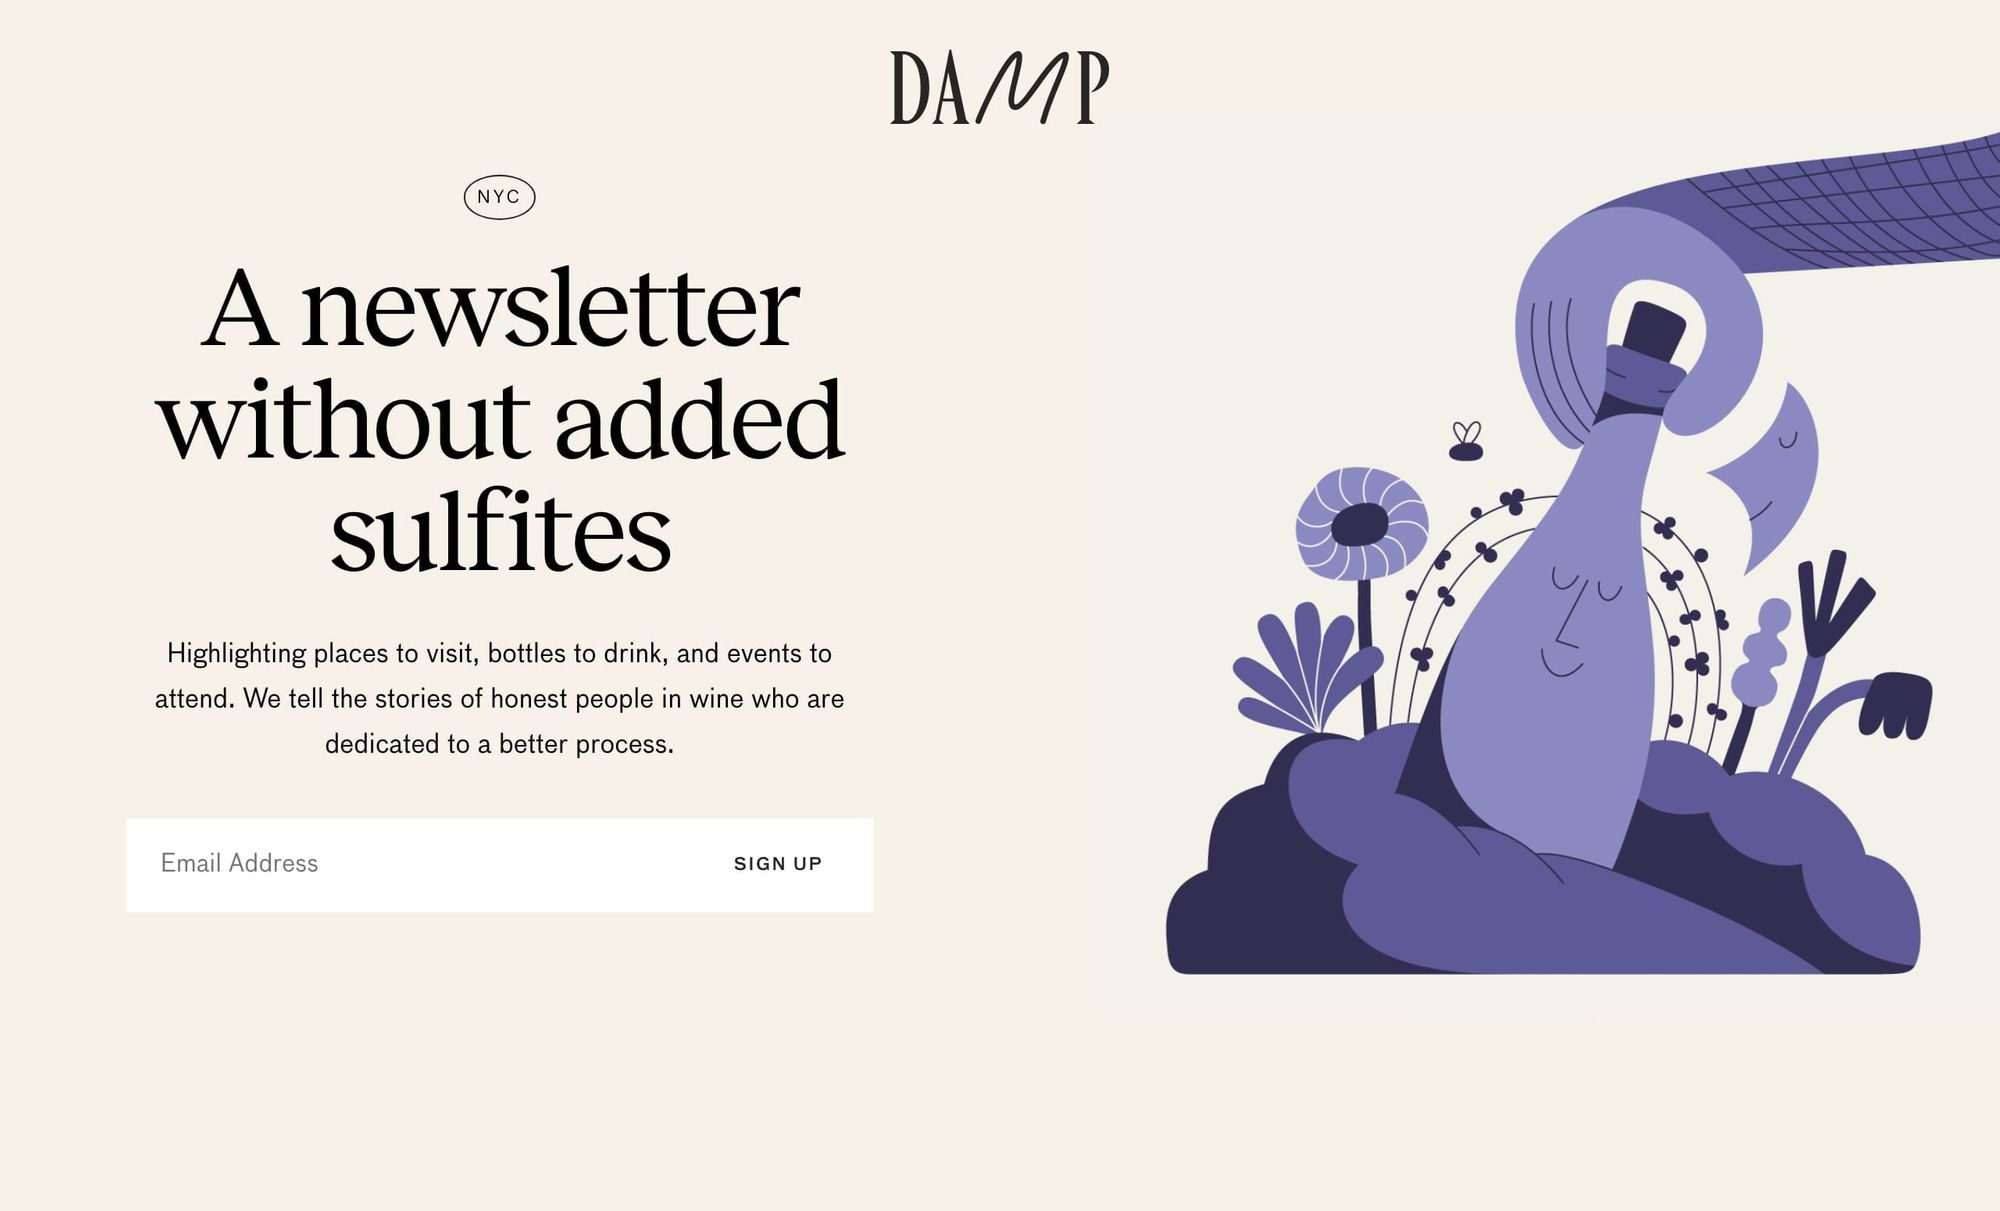 Damp newsletters sign up page